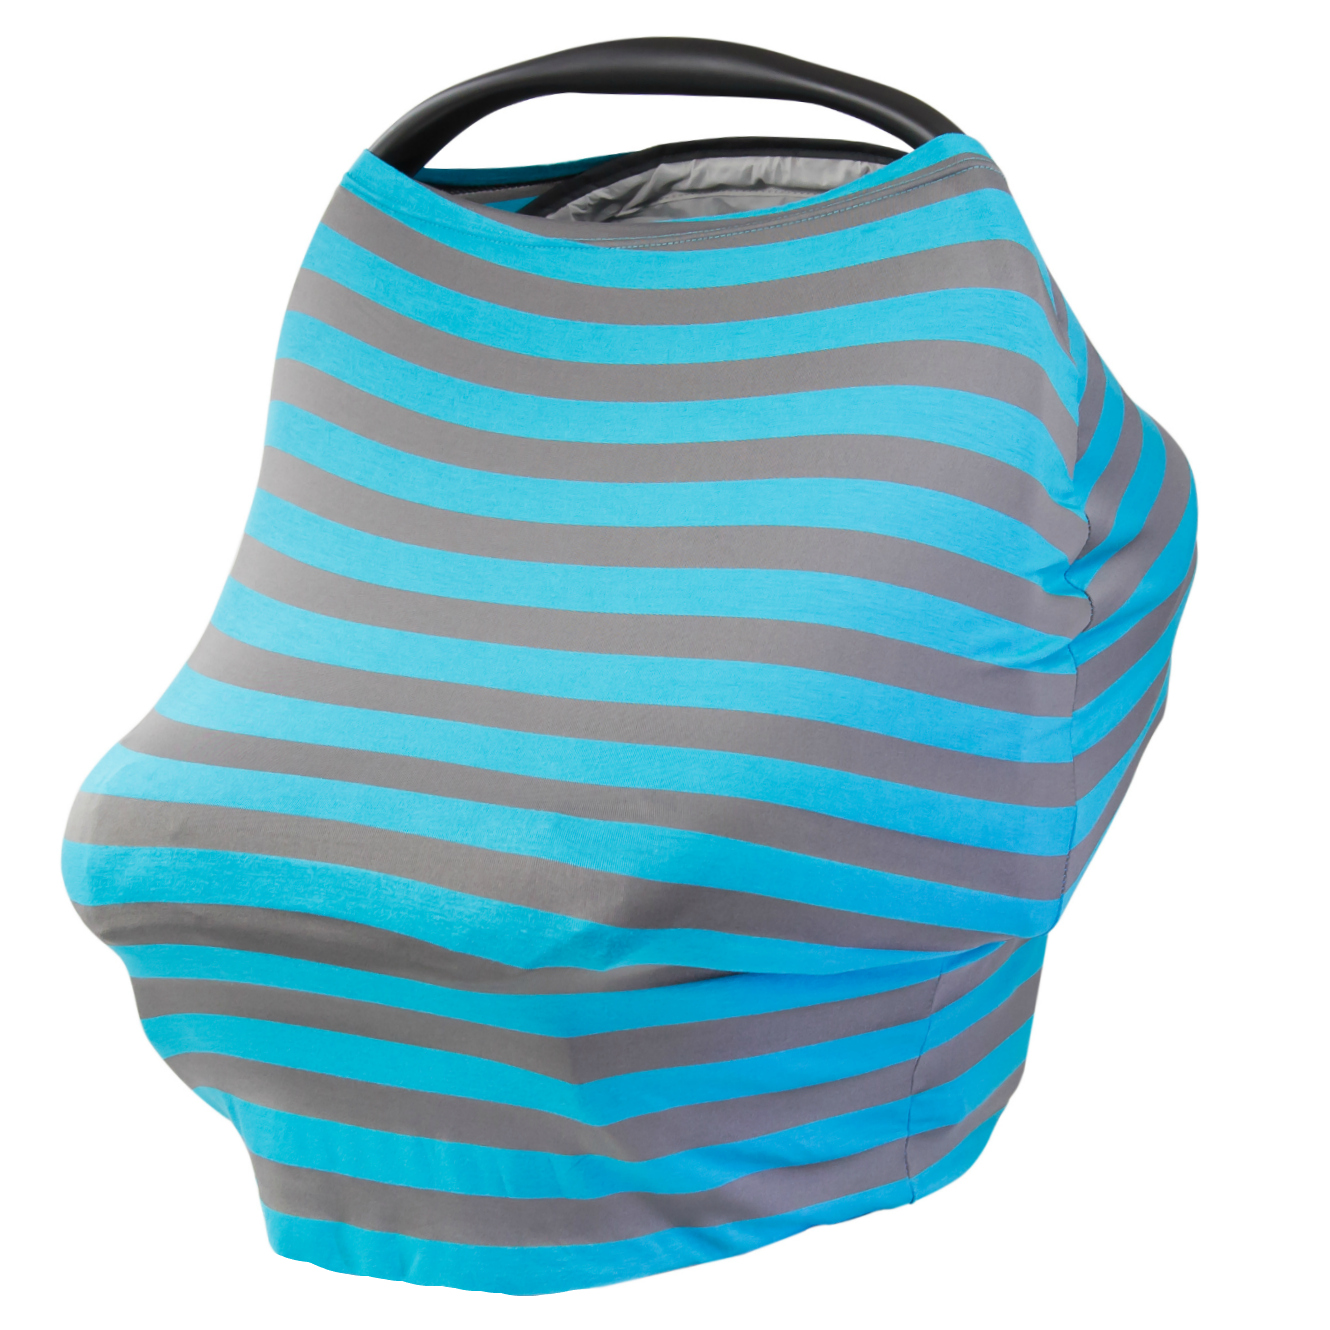 JLIKA Baby Car Seat Canopy Cover and Stretchy Nursing Cover Turquoise Gray Stripe